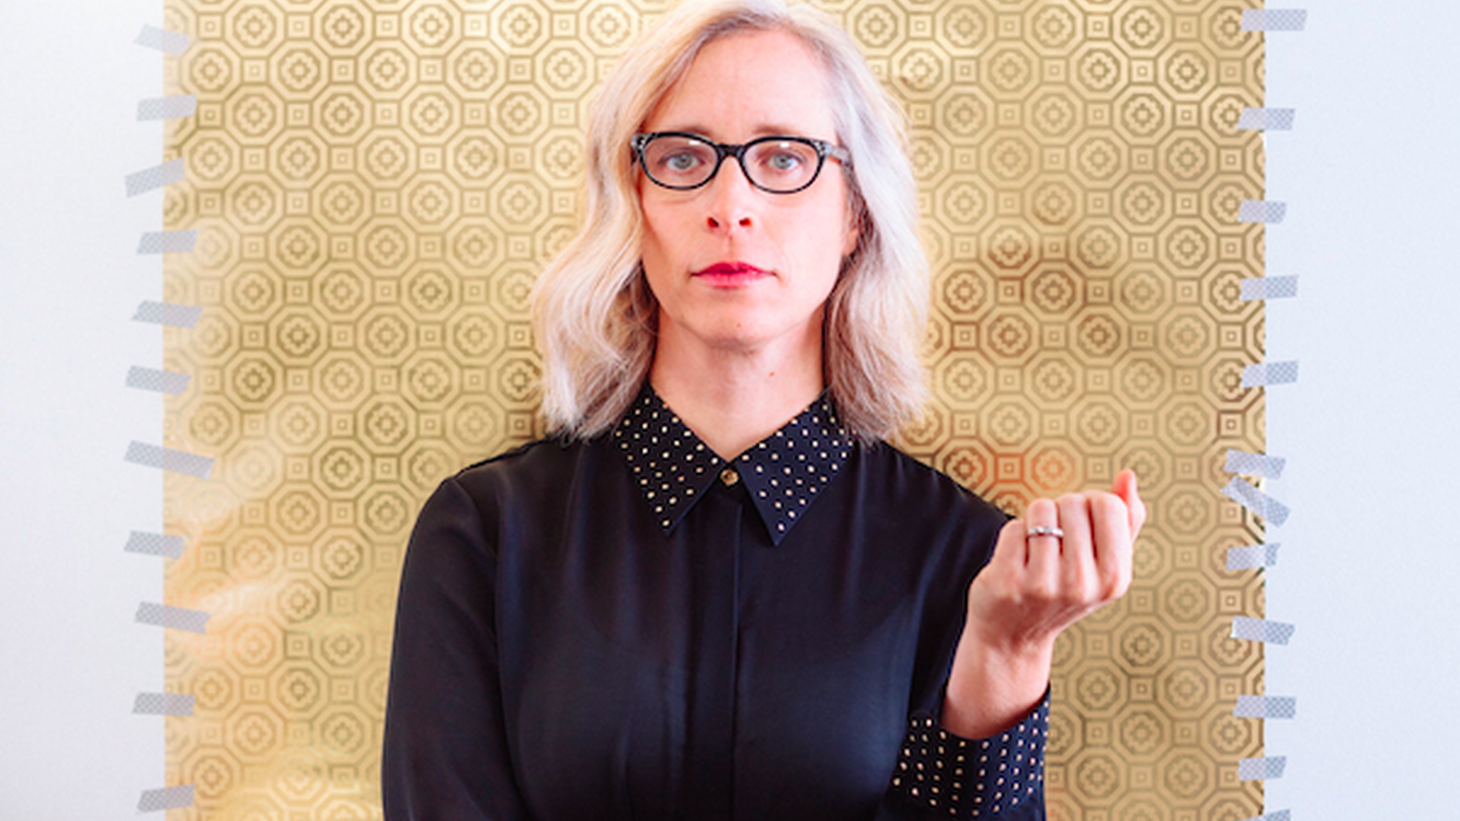 On her 10th solo album, The Lookout, prolific songwriter Laura Veirs proves the depth of her musical skill. Her warm and soothing voice makes lyrics about our unsteady world go down easy and we look forward to hosting her with a full band.